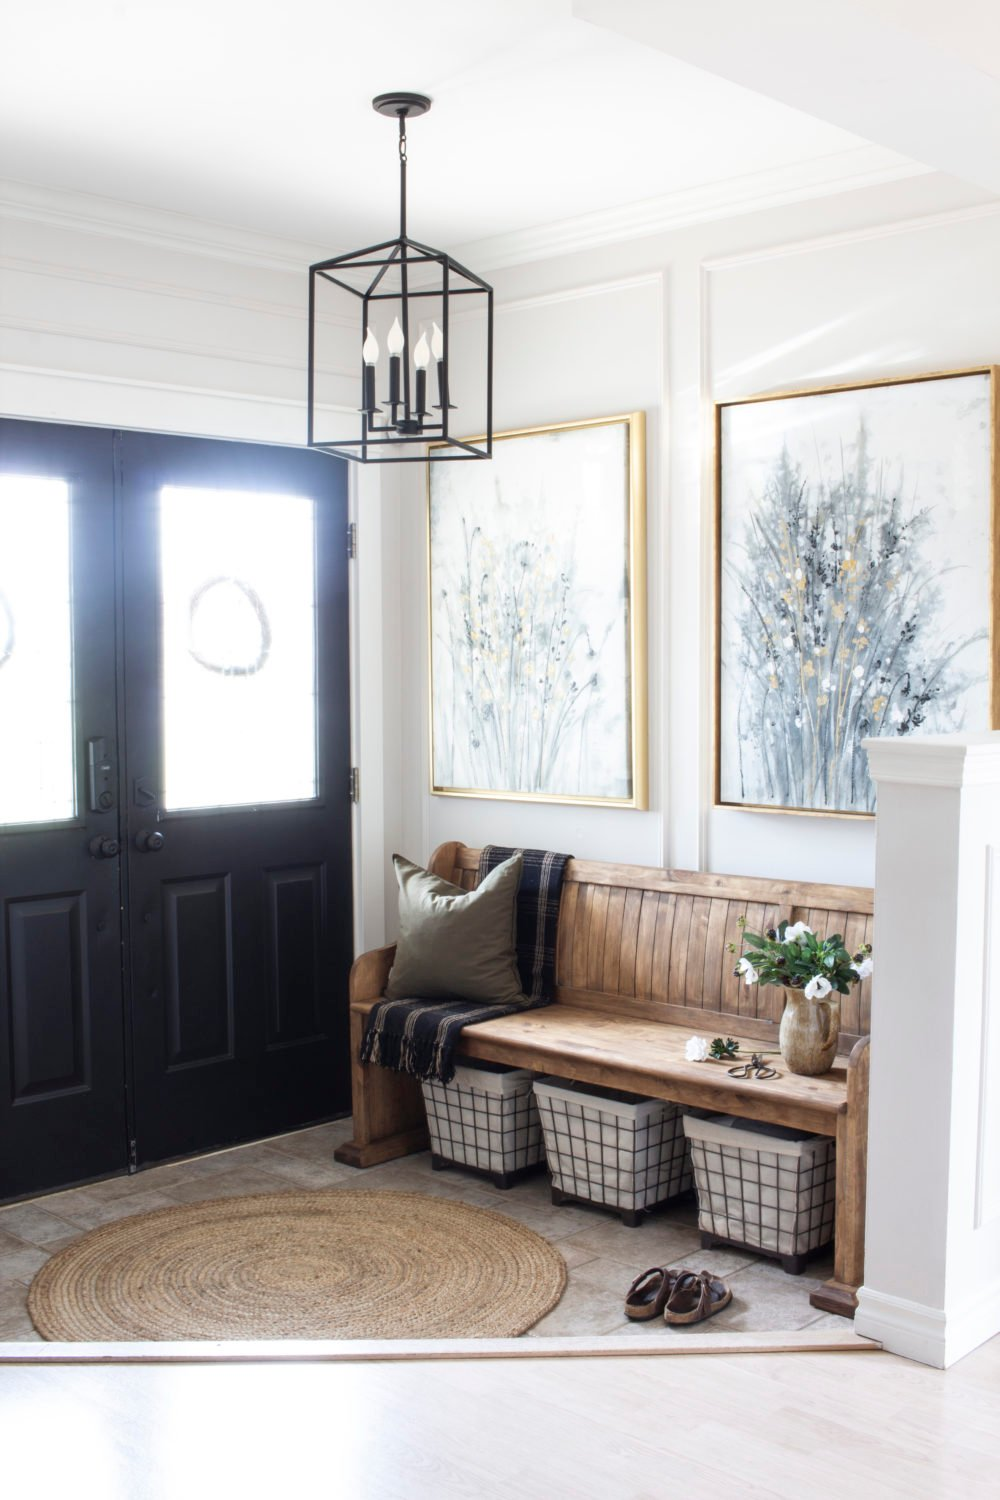 entry from hall wood church pew black doors gold framed art